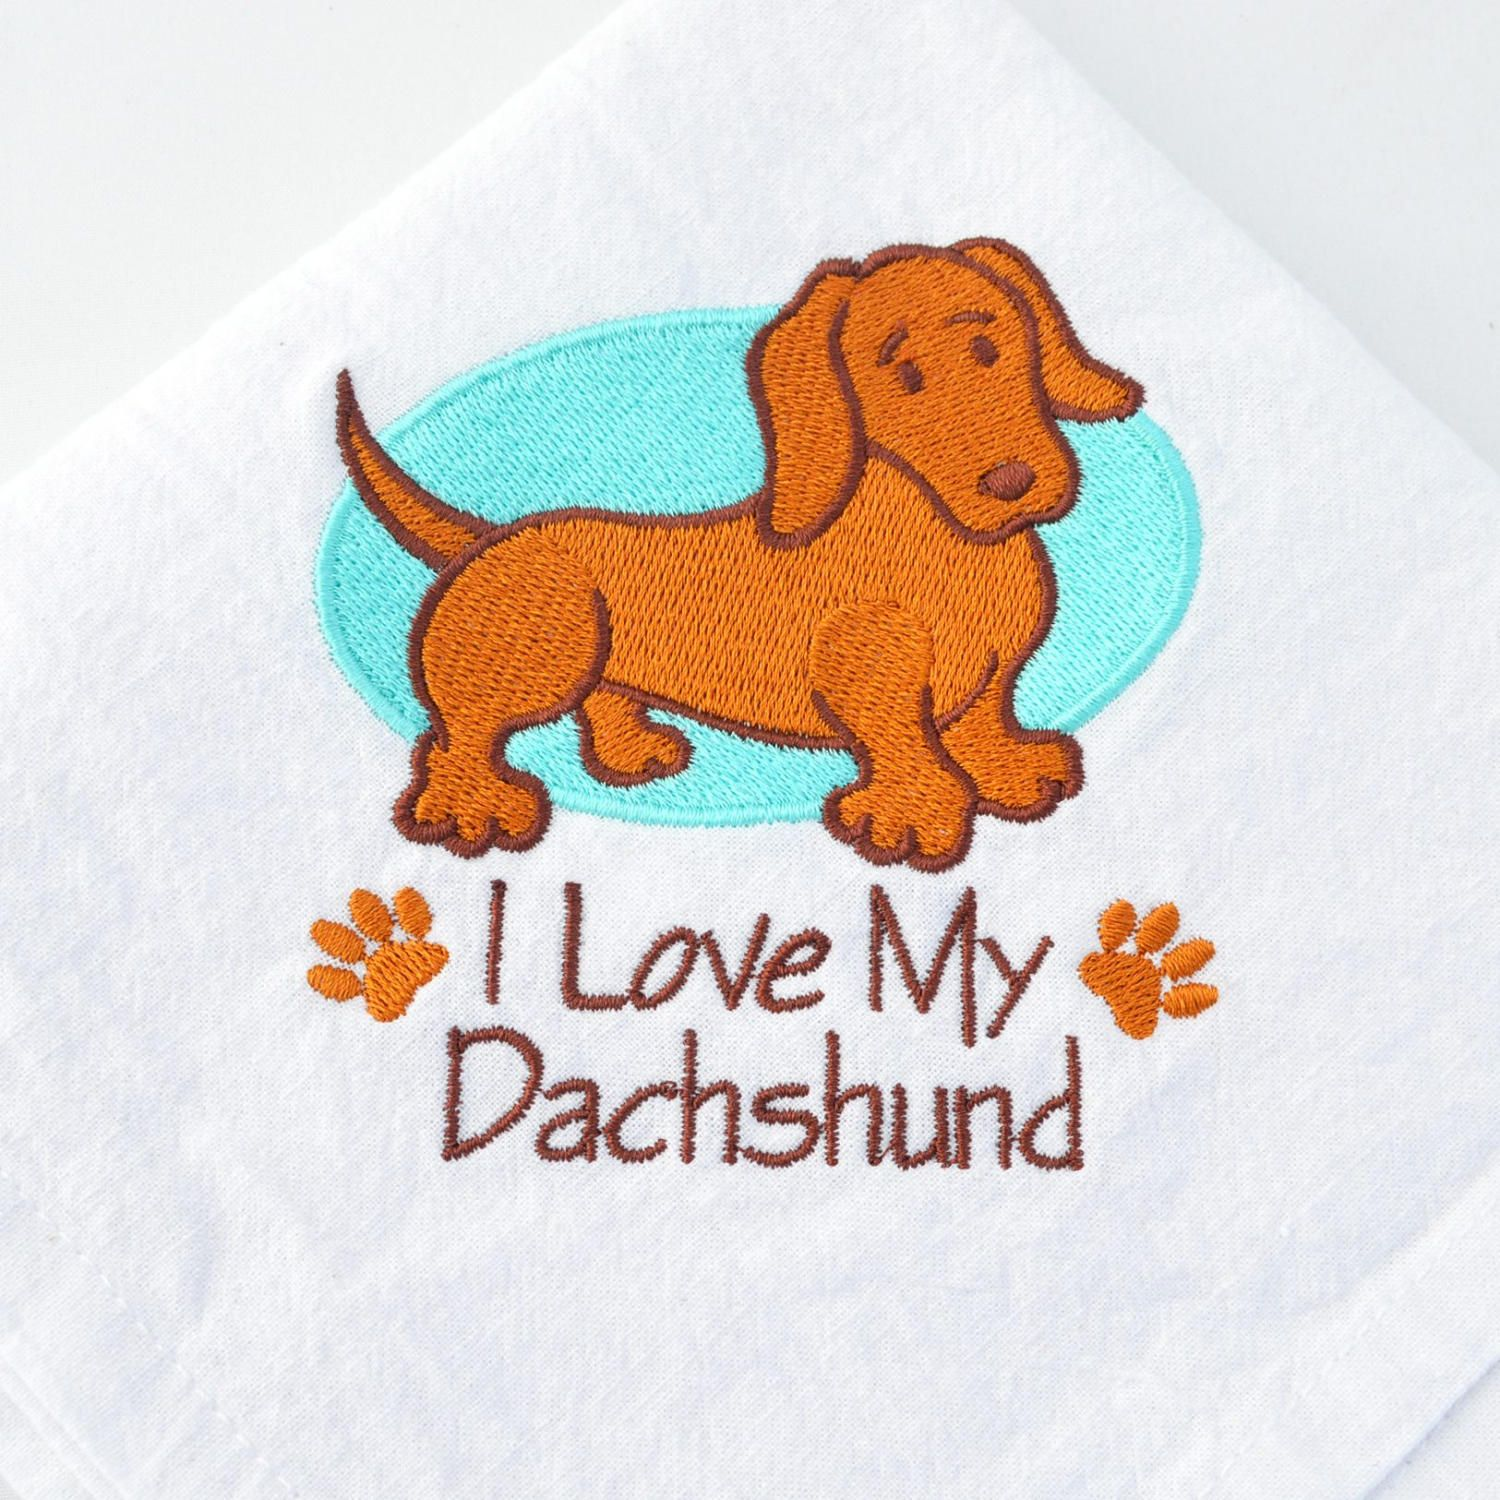 Dachshund Home Decor Dachshund Home Decor Doxie Lover Gift Dachshund Lover Dog Tea